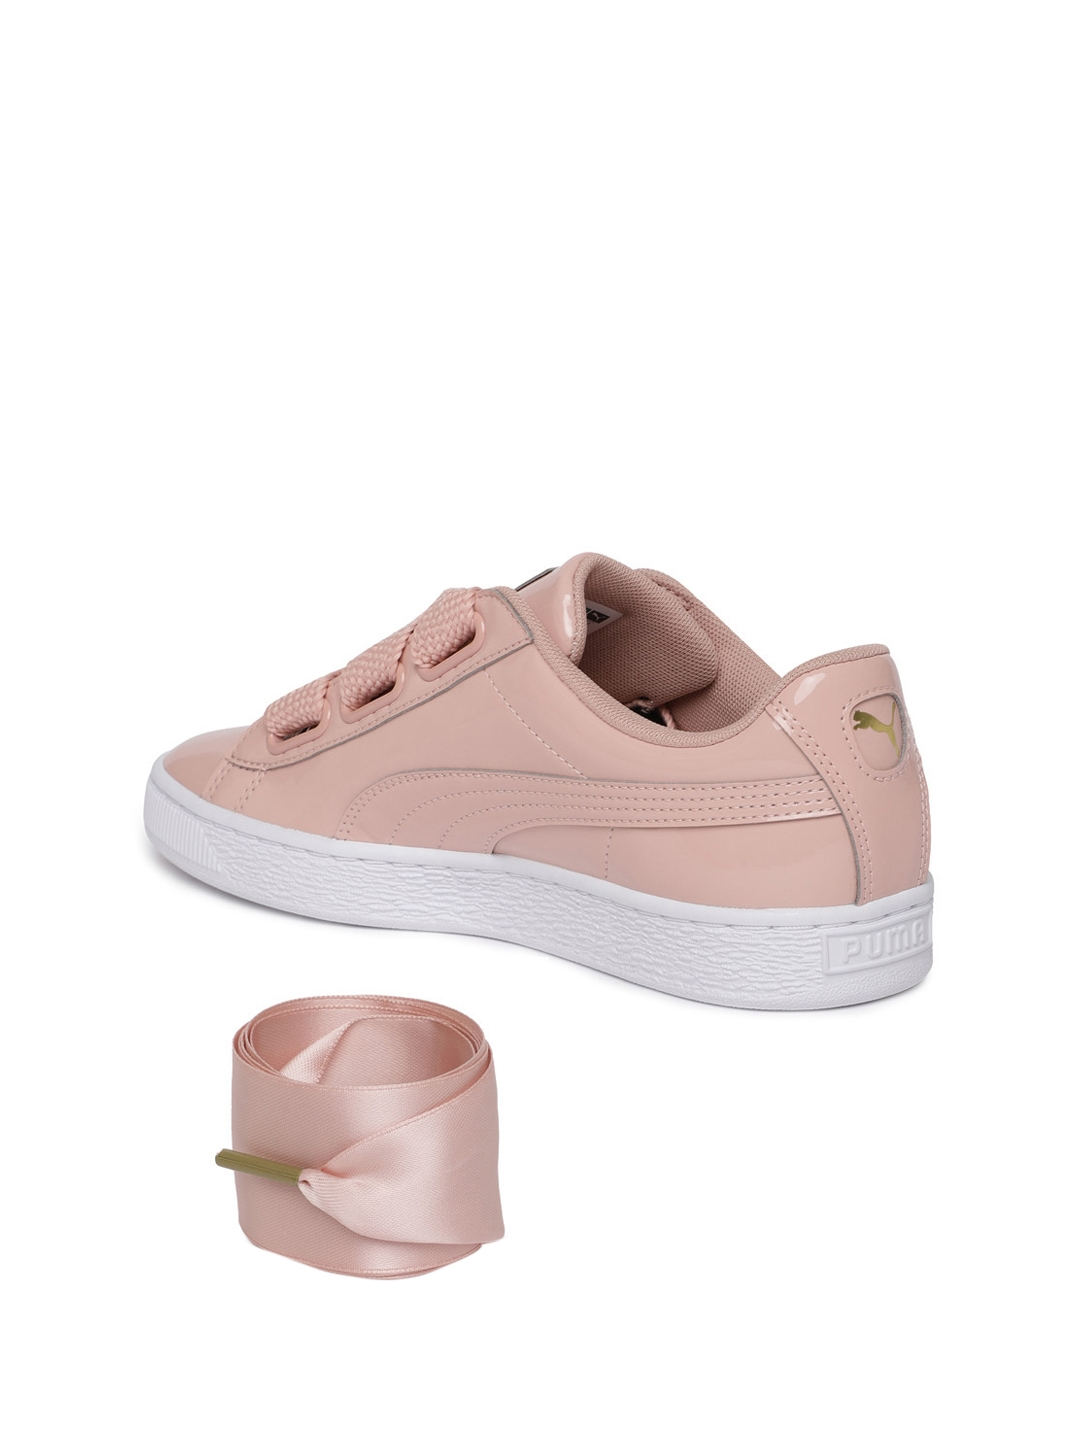 a08e30dbb4324c Buy Puma Women Pink Basket Heart Patent Wn S Leather Sneakers ...